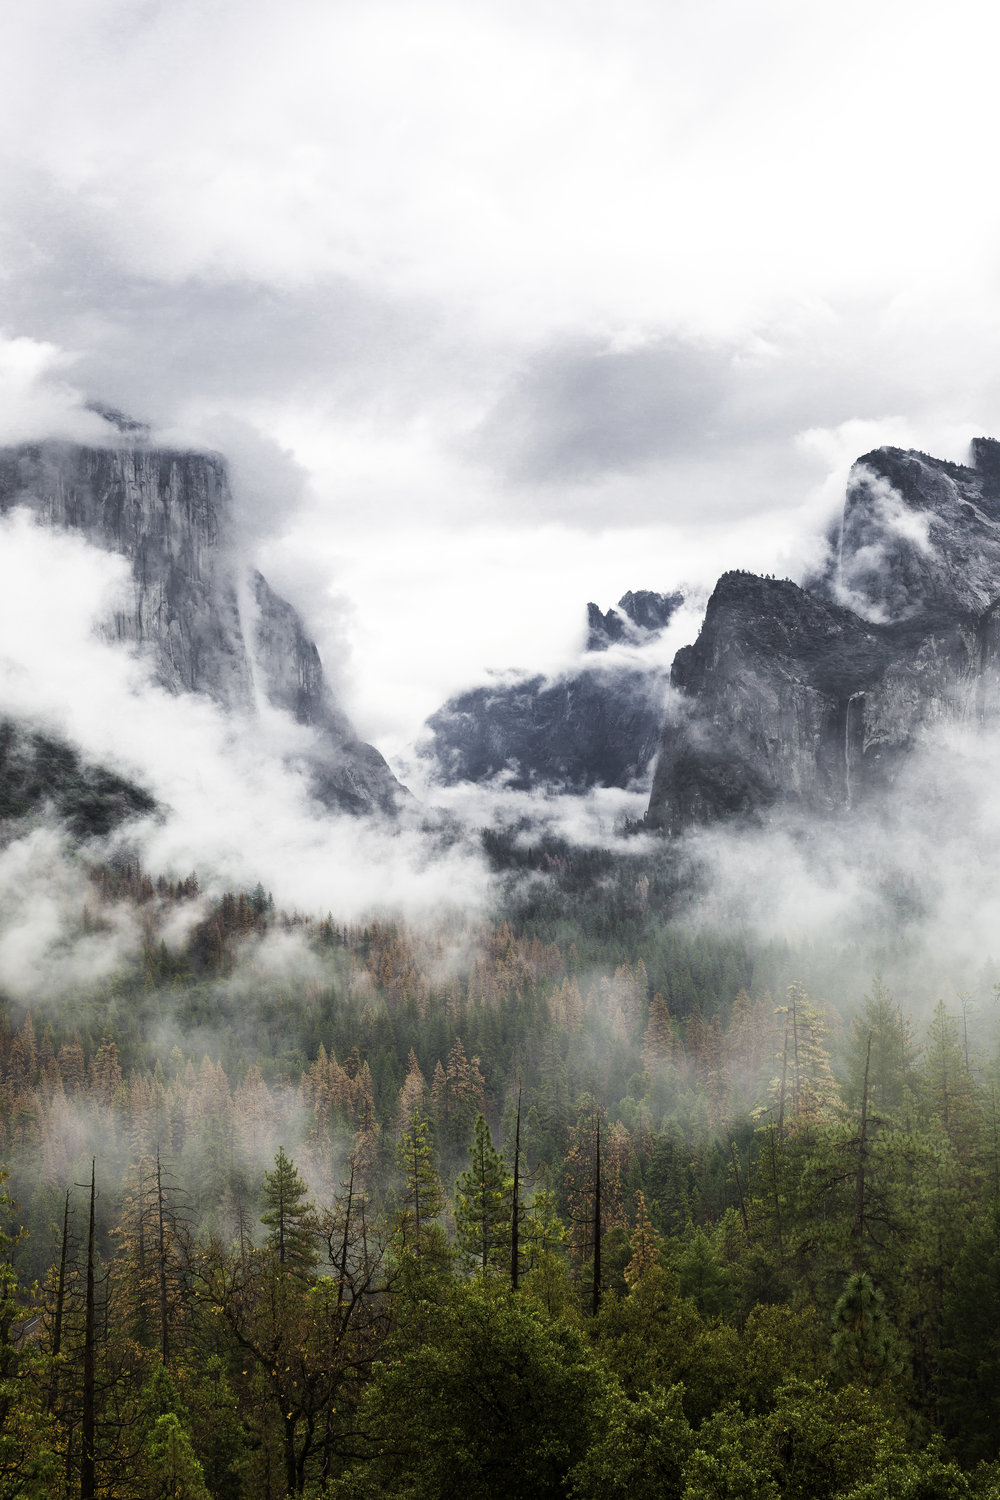 Moody morning in Yosemite from the Tunnel View